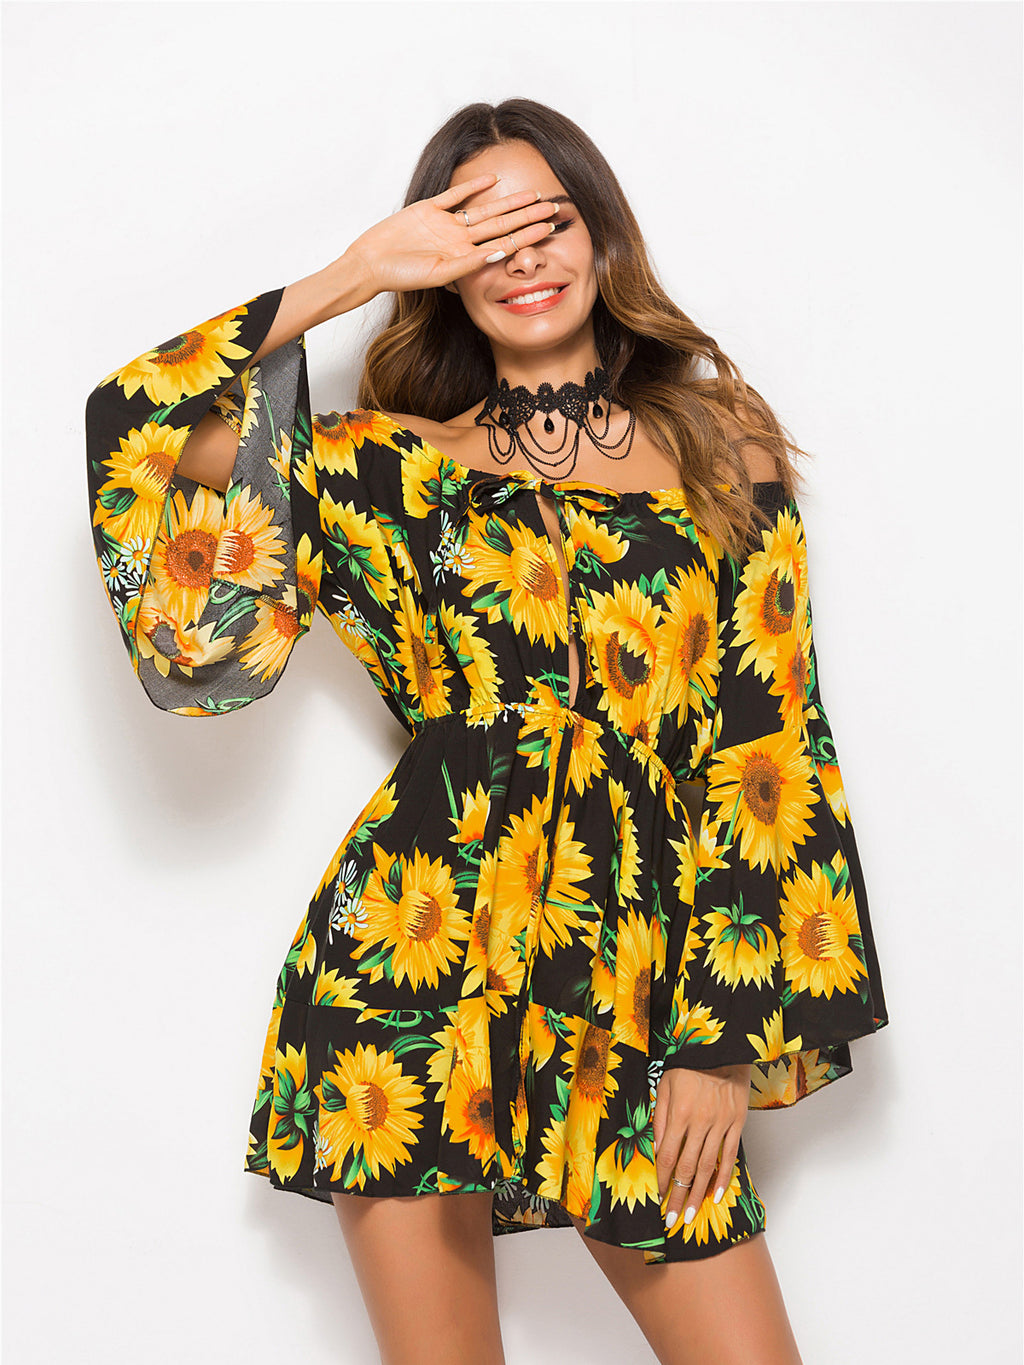 Off-the-shoulder mini dress featured in an allover sunflower print and an oversized fit